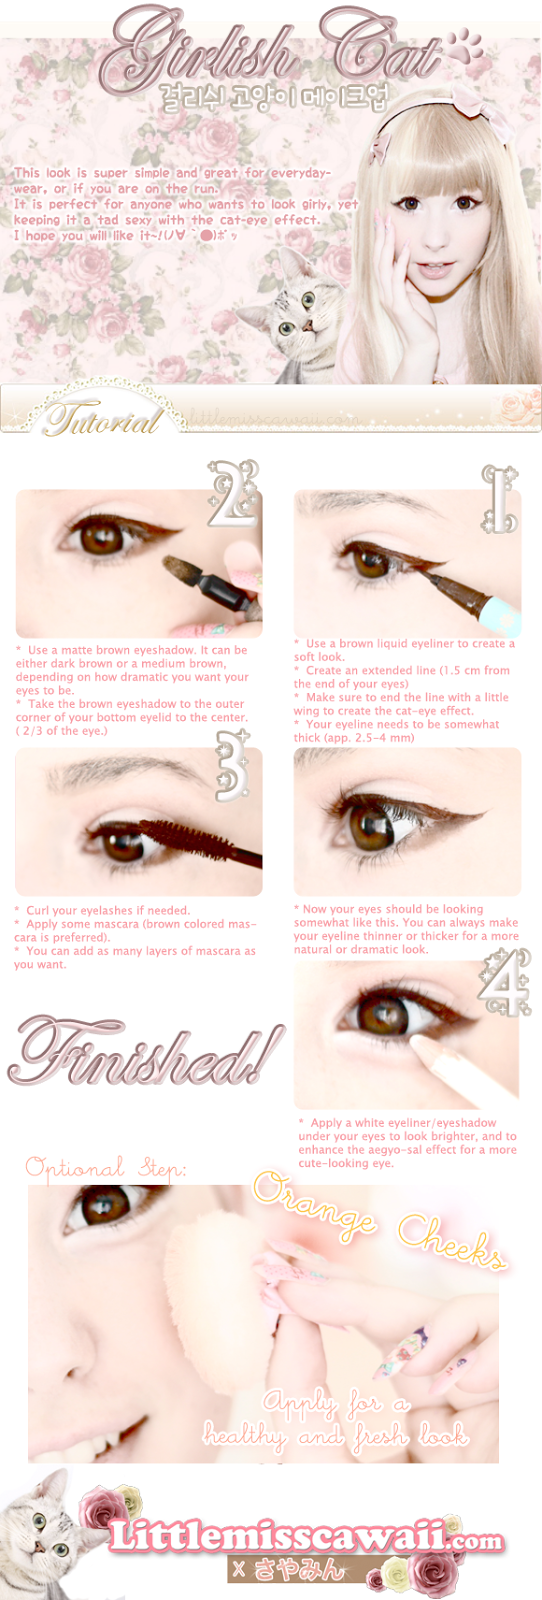 Korean eye makeup #makeup #korean #ulzzang #koreanmakeup.